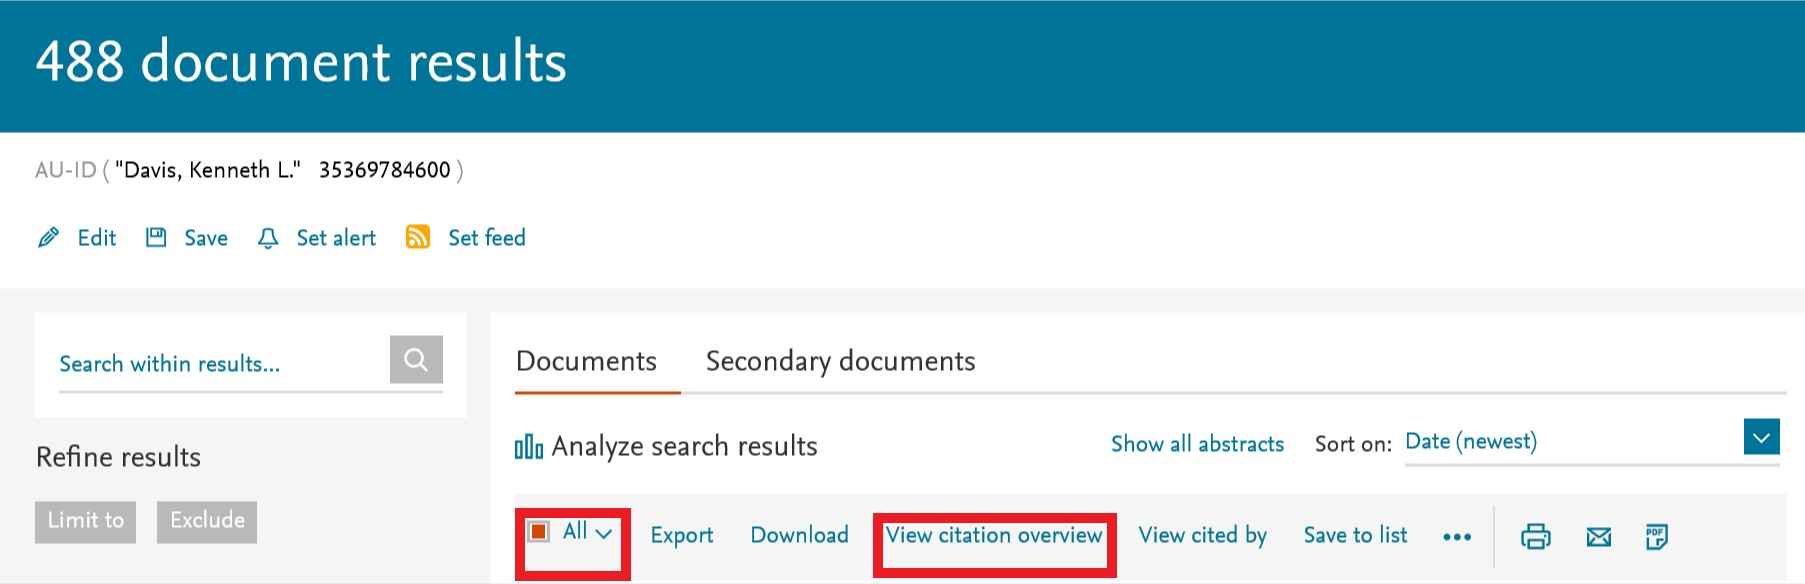 Filtering for Citation Overview